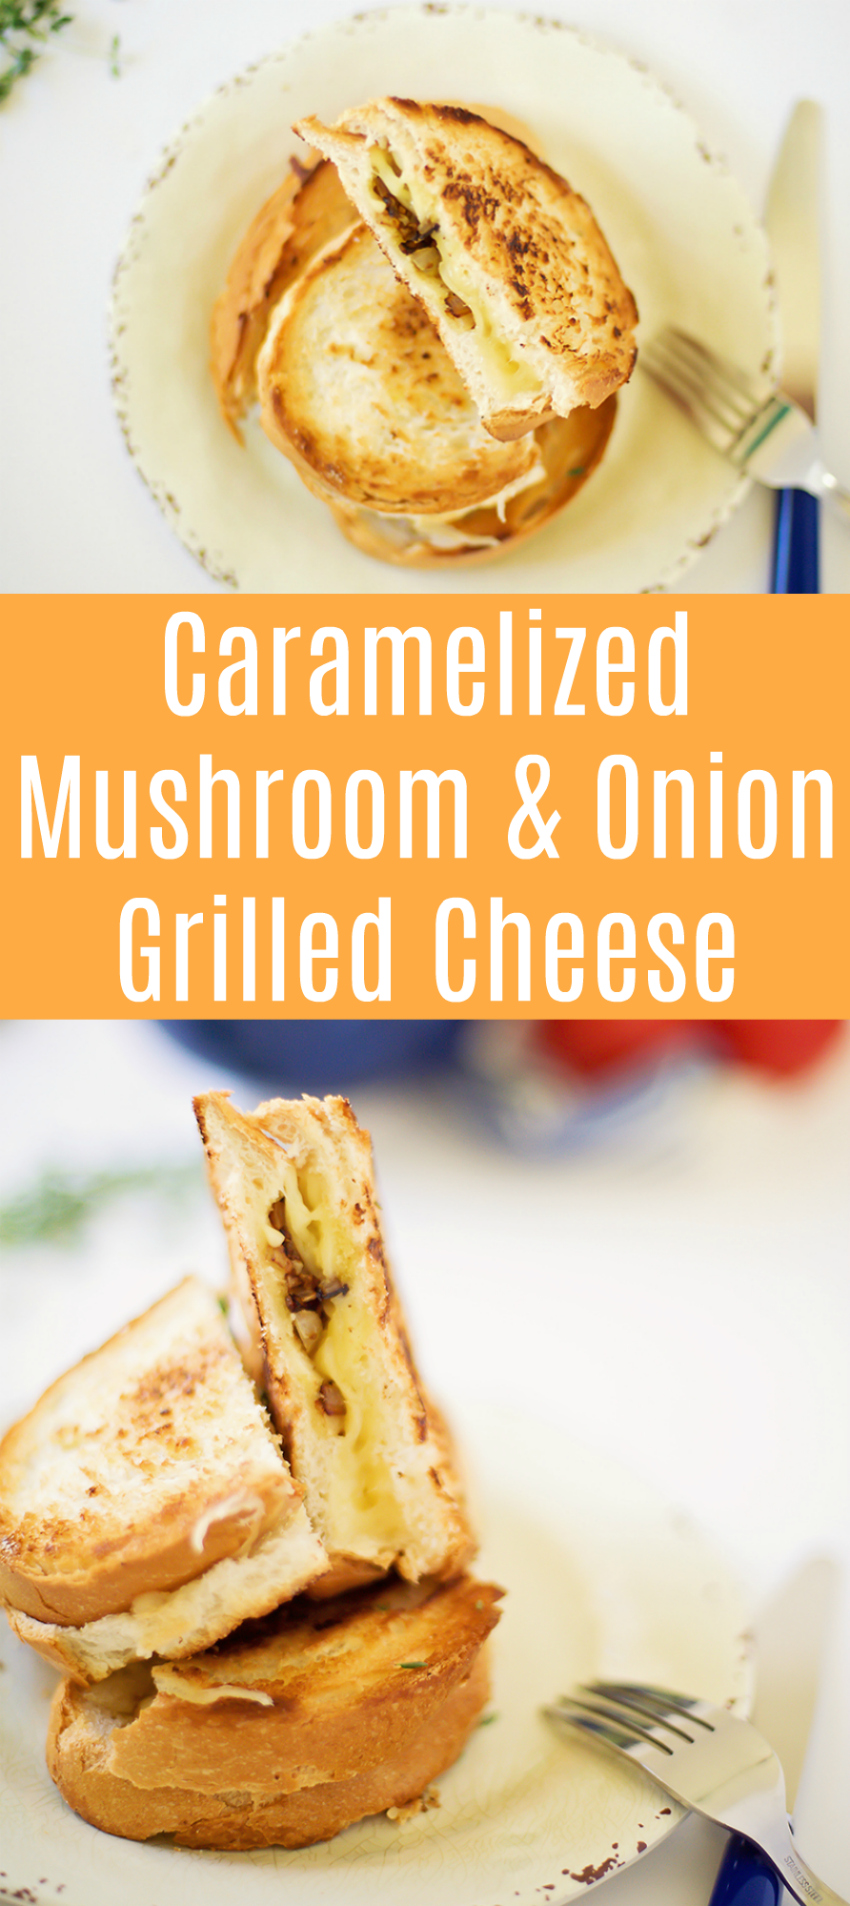 Caramelized Mushroom & Onion Grilled Cheese